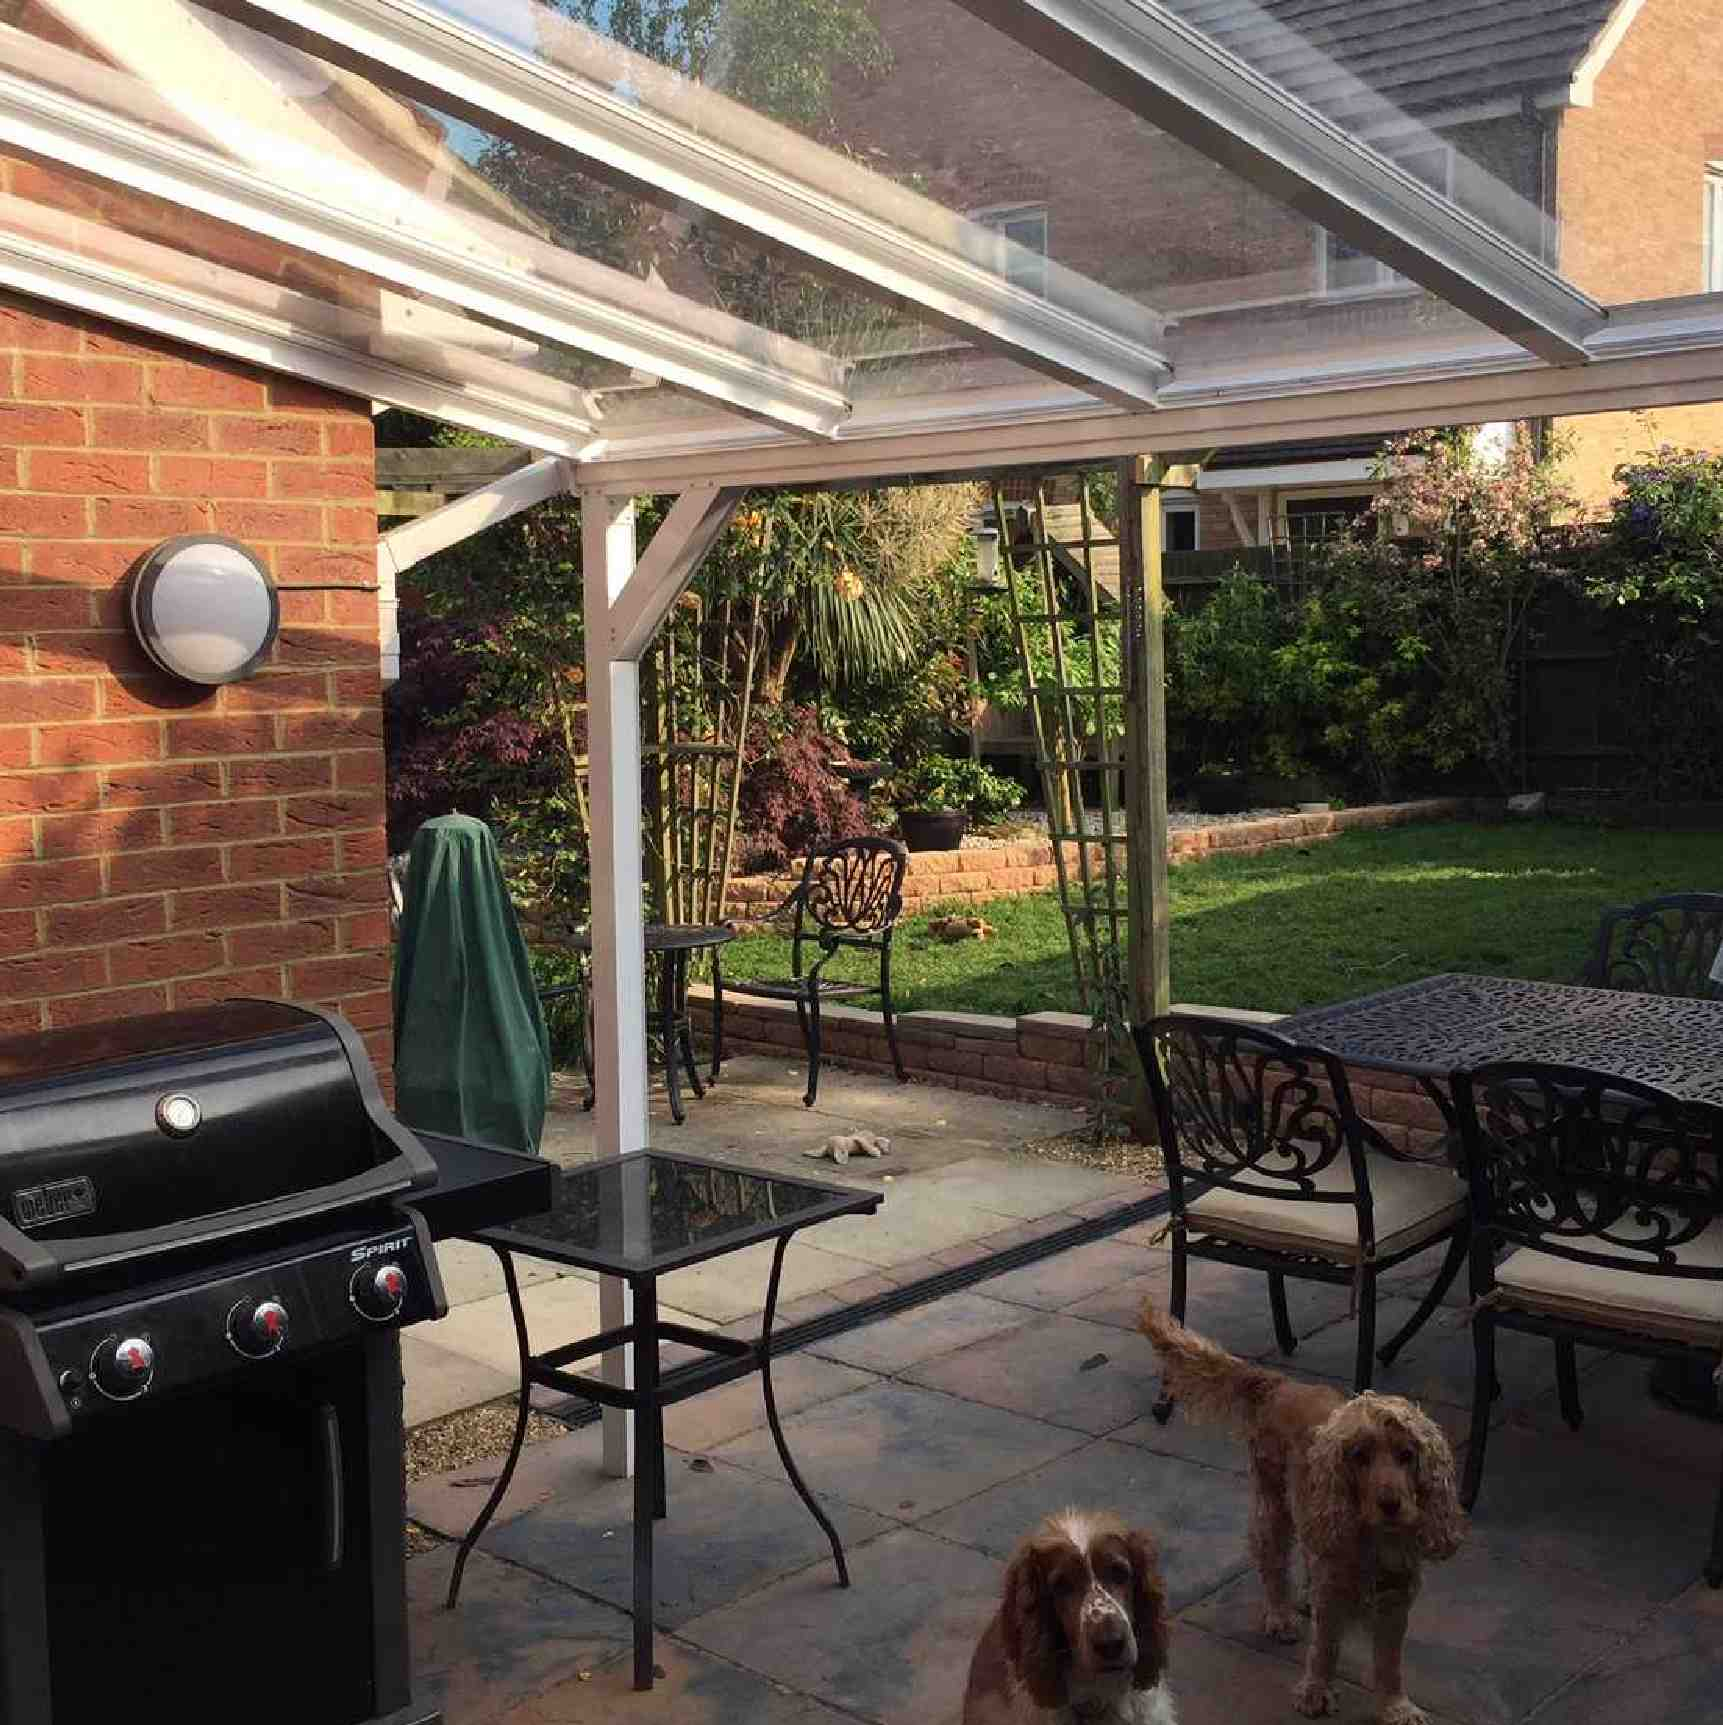 Omega Verandah with 16mm Polycarbonate Glazing - 5.6m (W) x 4.0m (P), (3) Supporting Posts